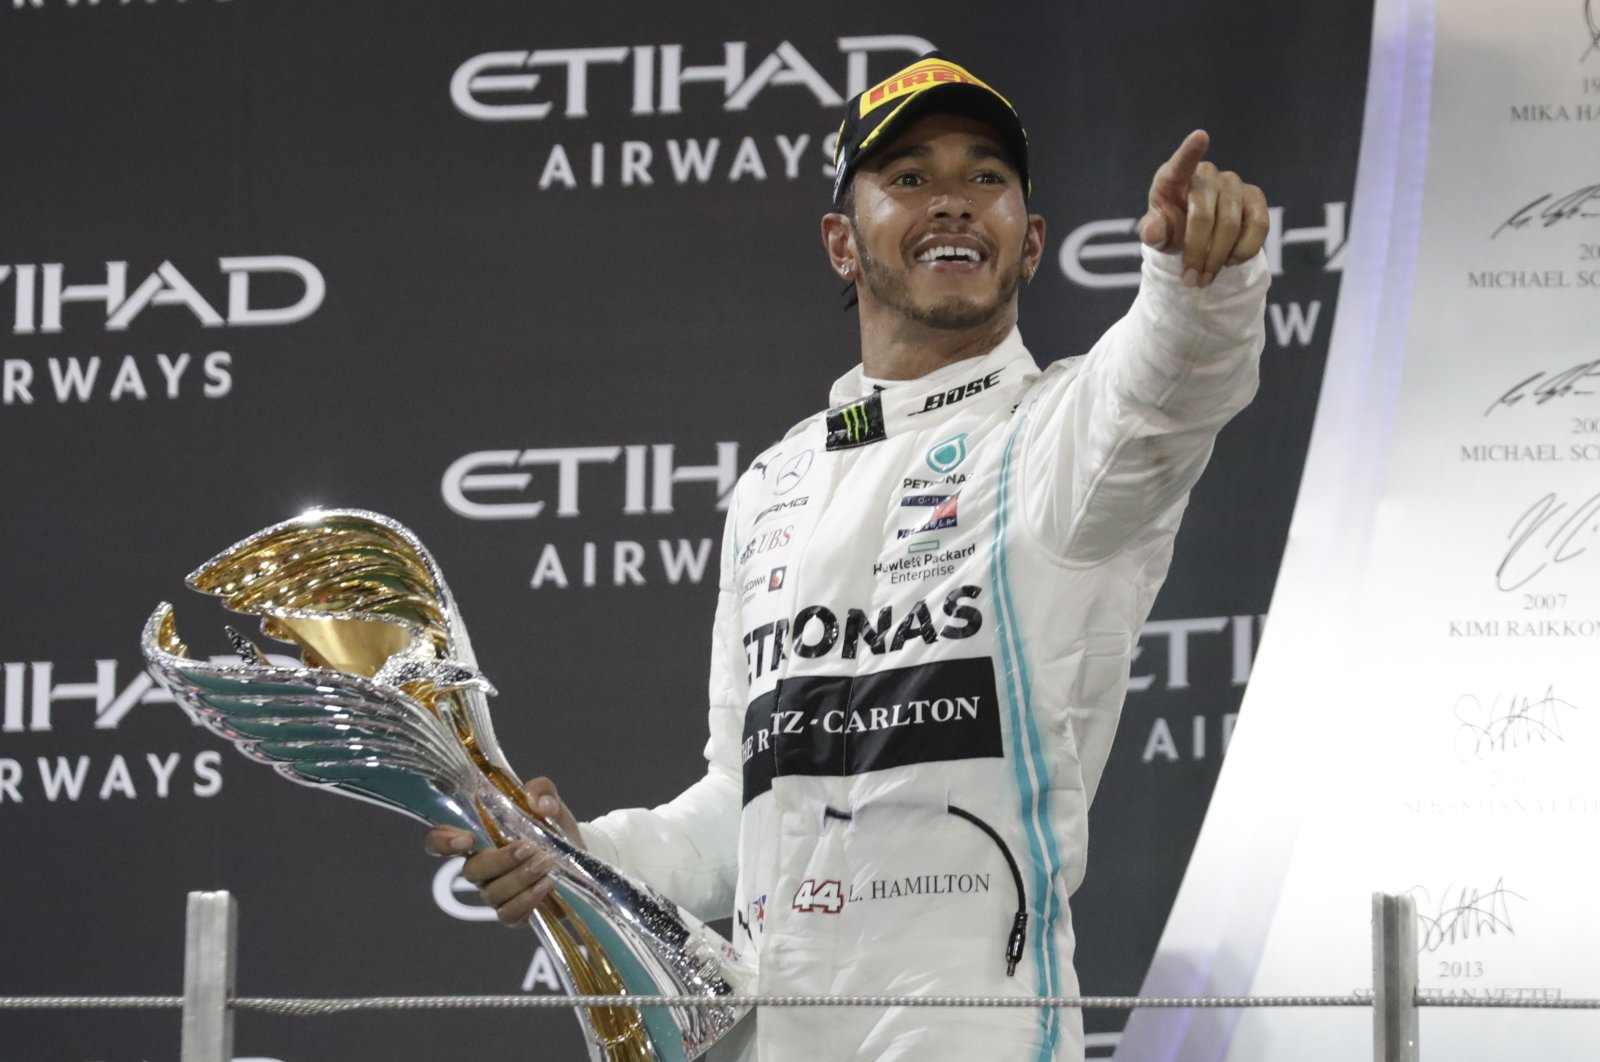 Lewis Hamilton celebrates after winning the Emirates F1 GP in Abu Dhabi, UAE, Dec.1, 2019. (AP Photo)